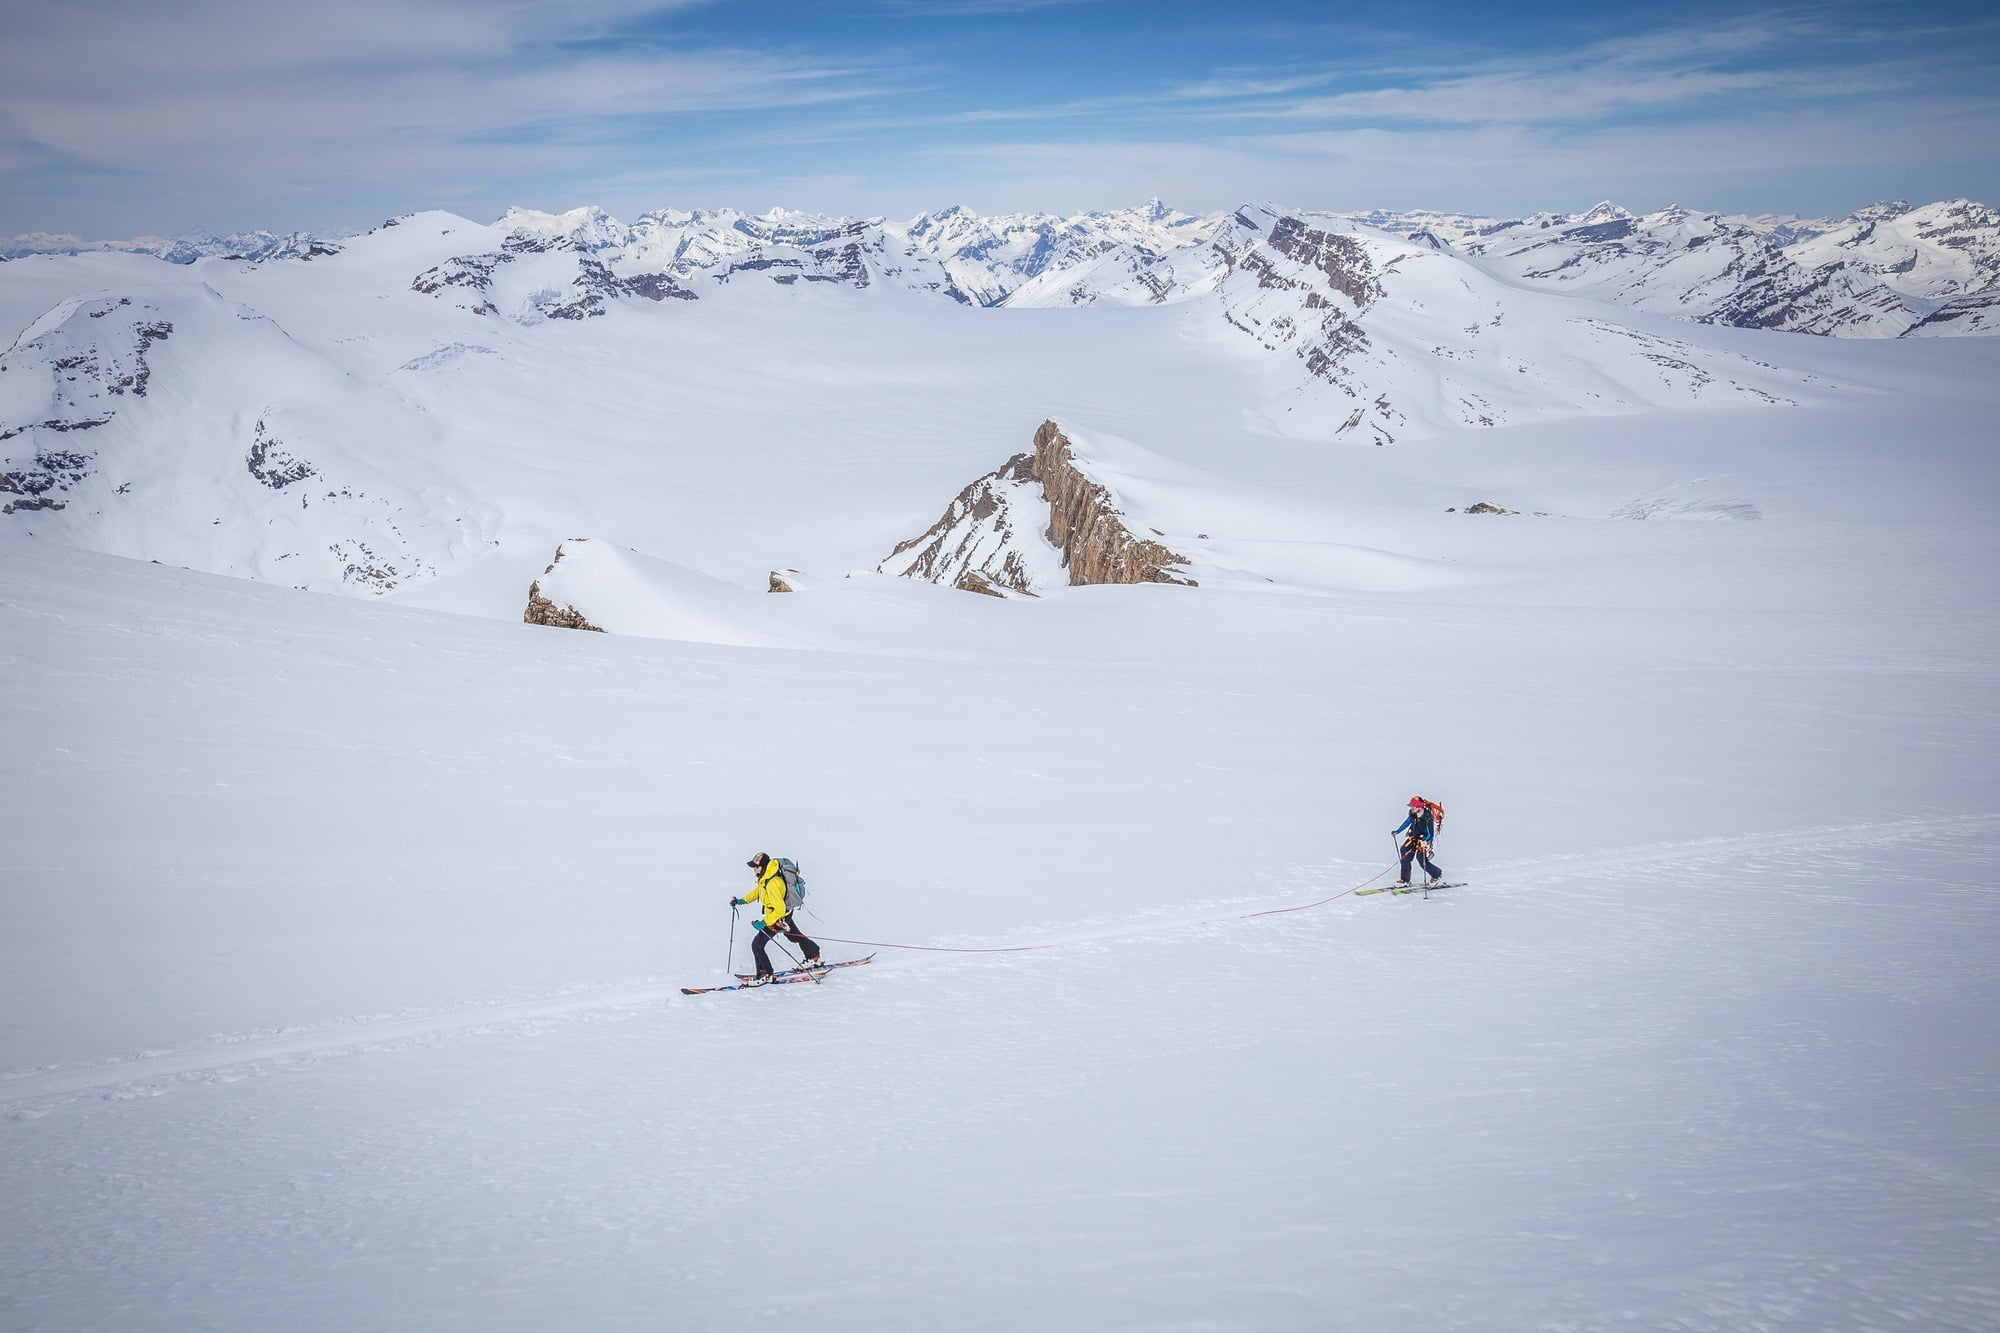 2 people traversing over a backcountry skiing destination: Canada